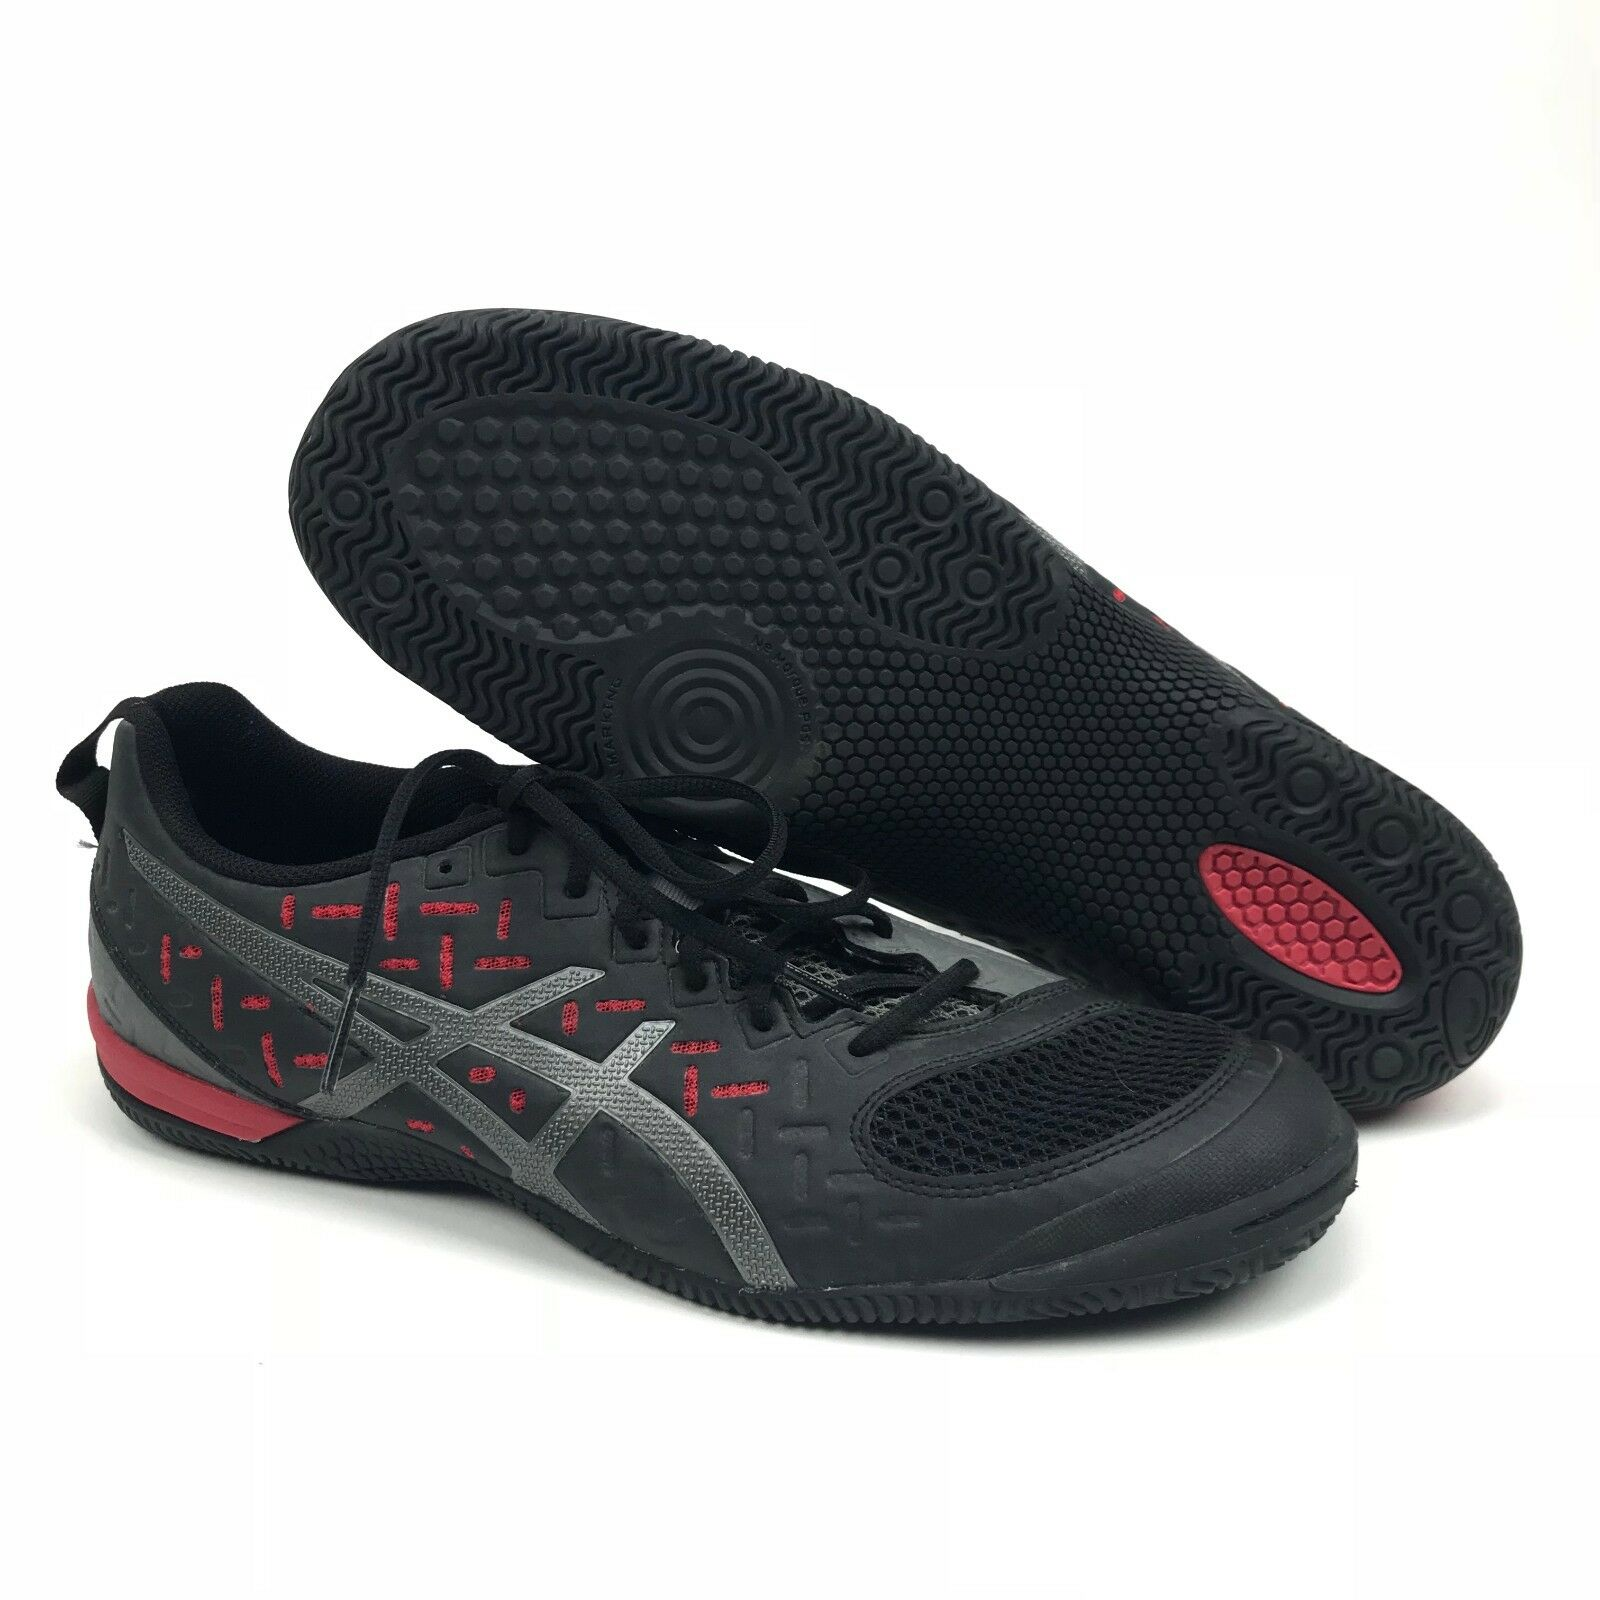 Asics BETTER YOUR BEST Athletic Men's Gel-Fortius Cross-Training S517Y Size 11.5